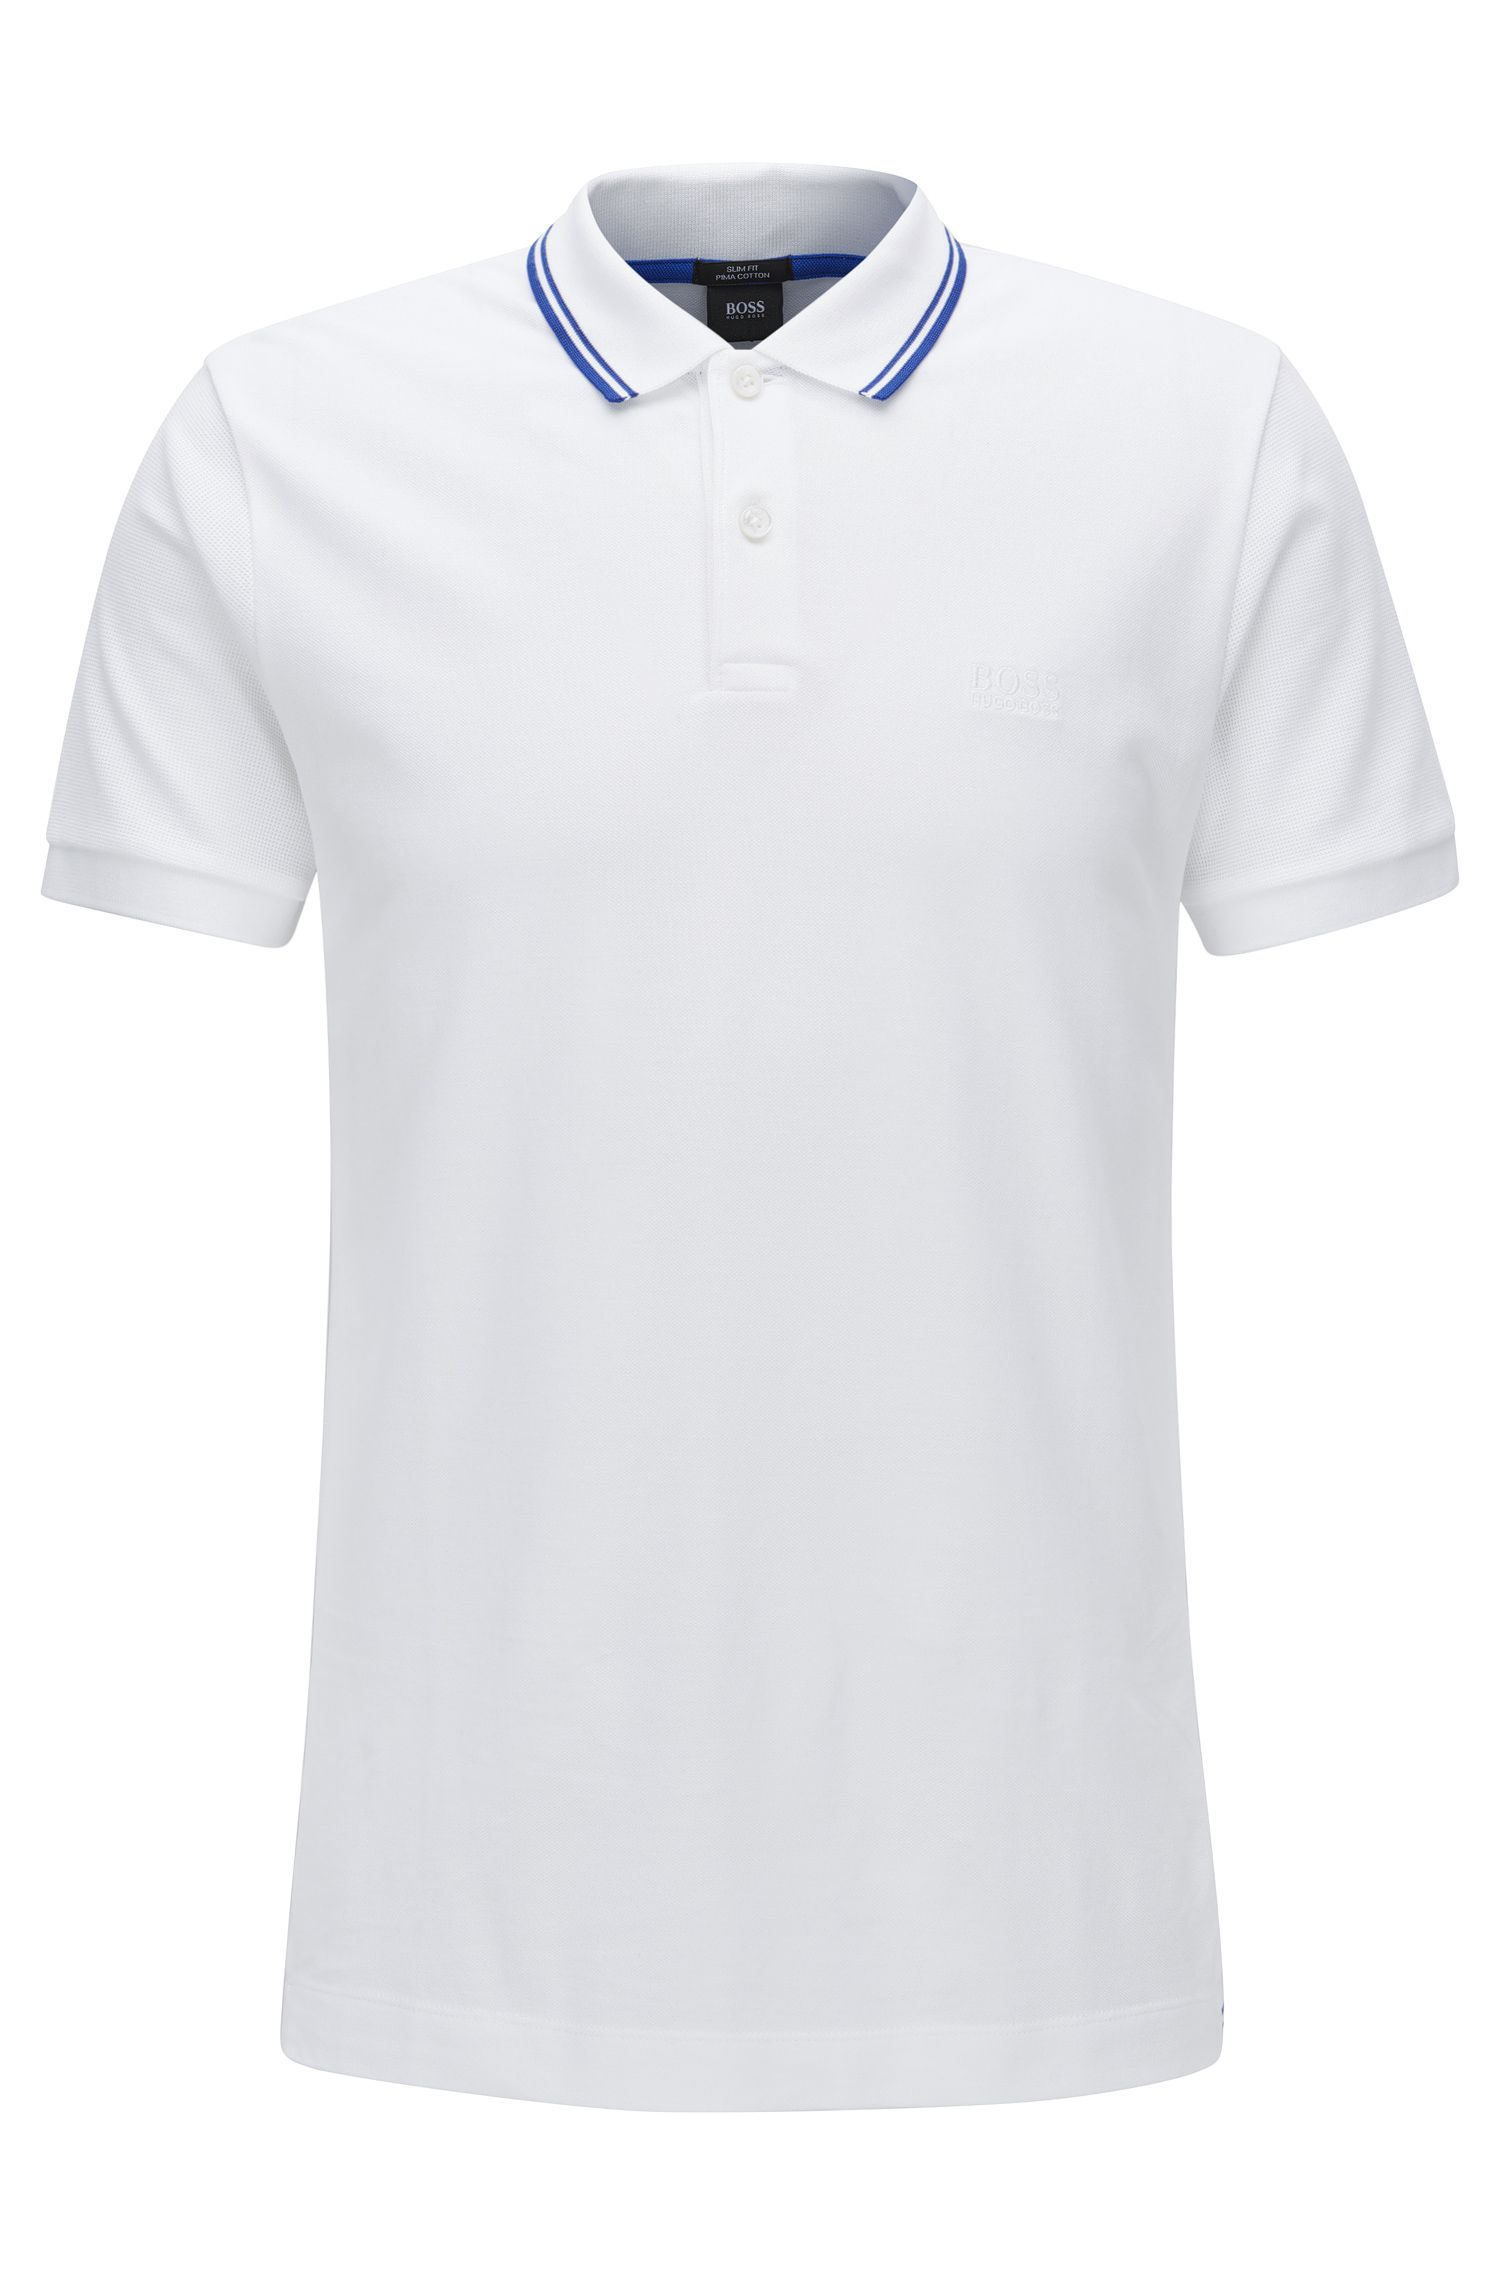 Piqué Pima Cotton Polo Shirt, Slim Fit | Phillipson